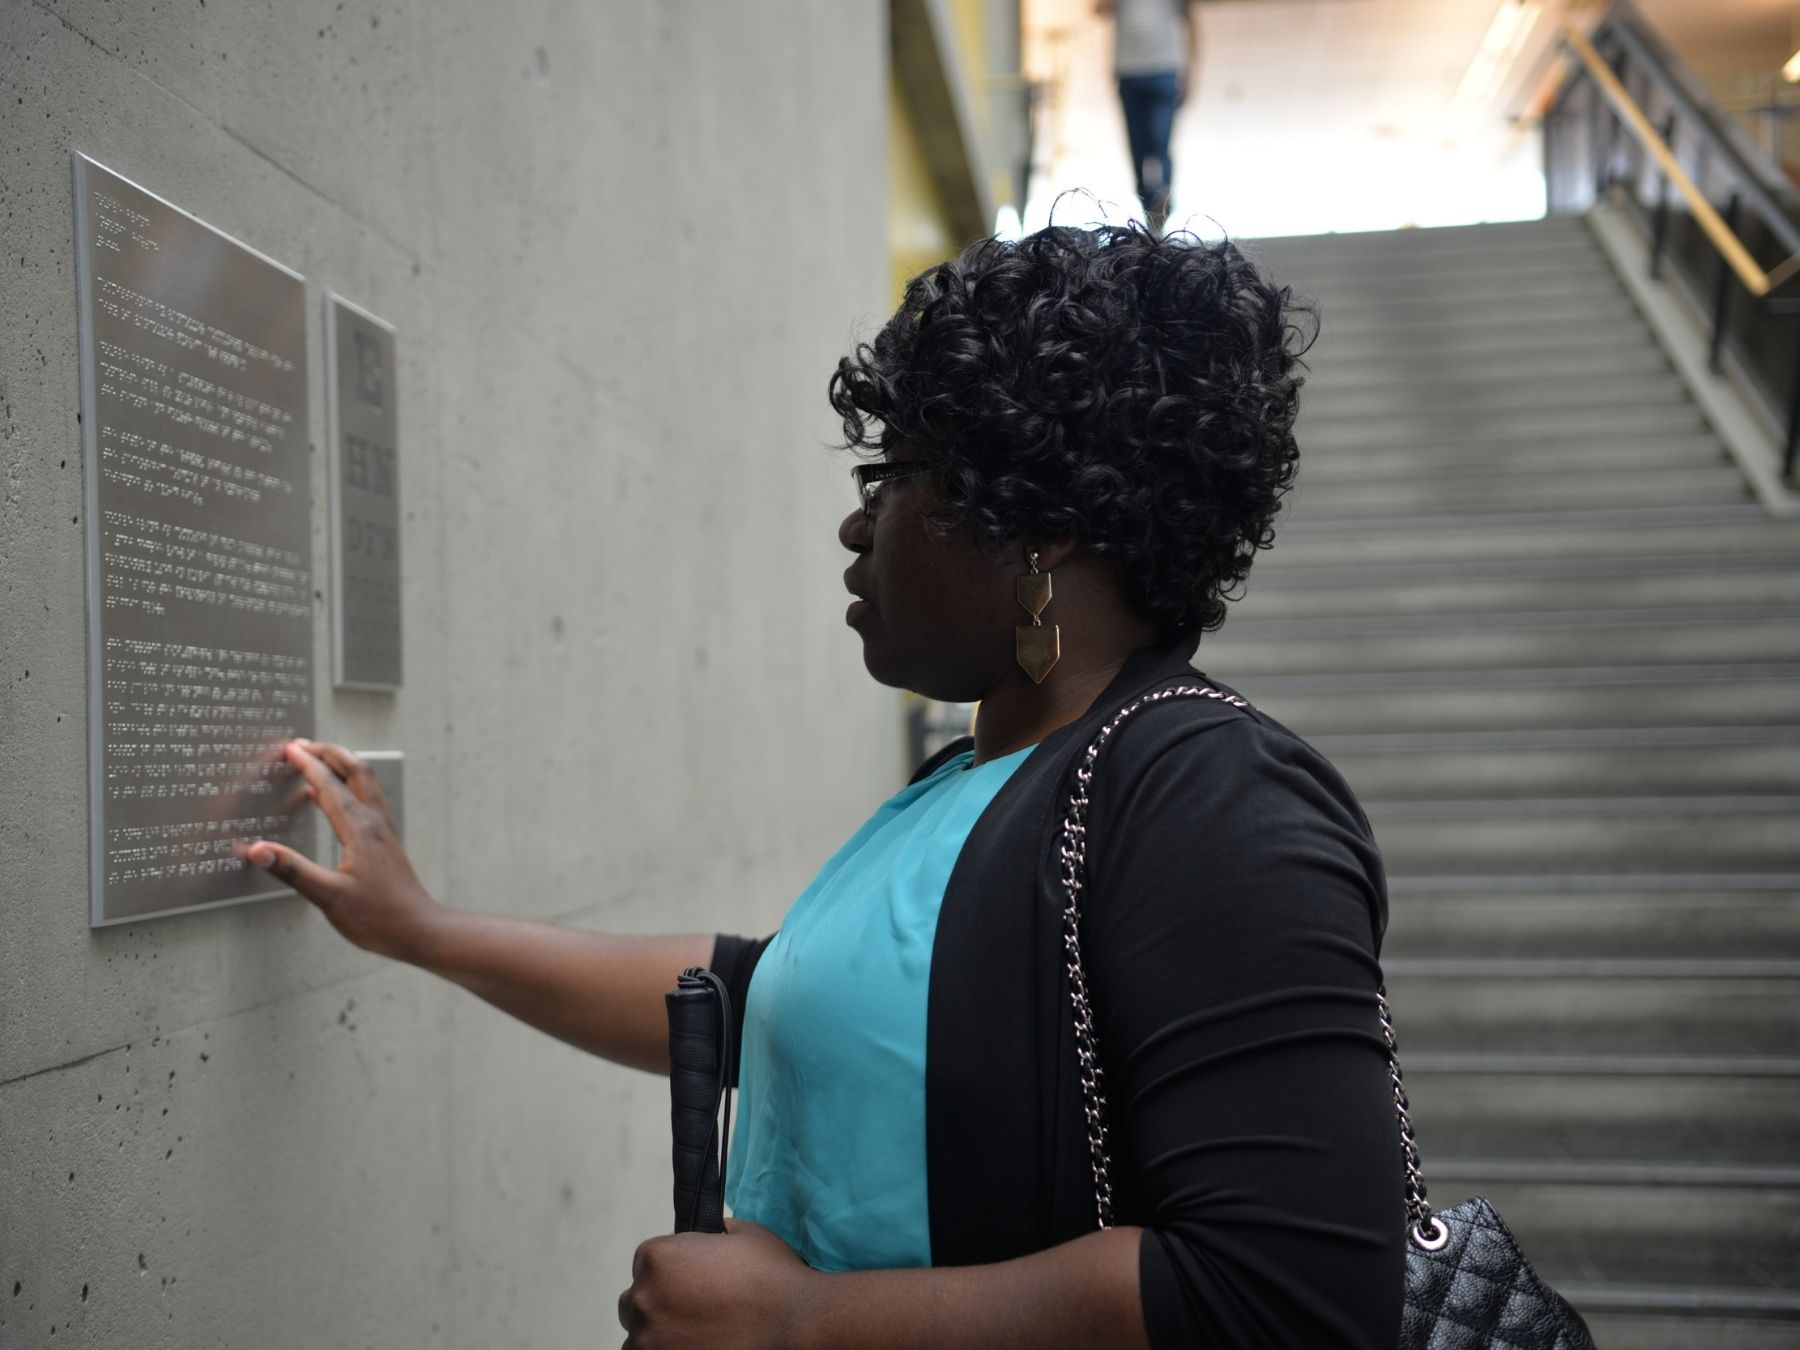 A visually impaired lady reading the braille on the wall